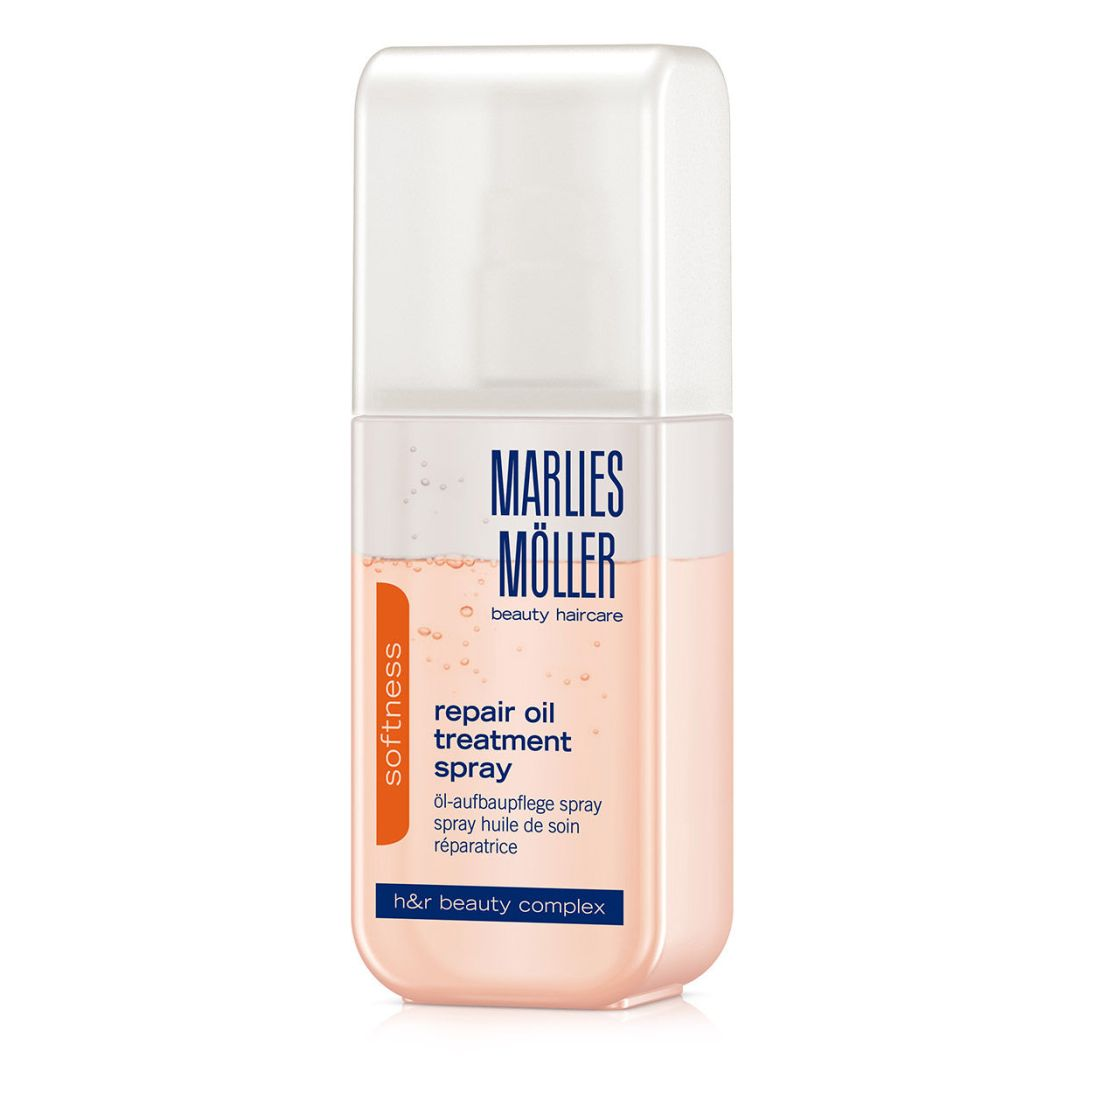 Marlies Möller Softness Repair Oil Treatment, Spray 125ml